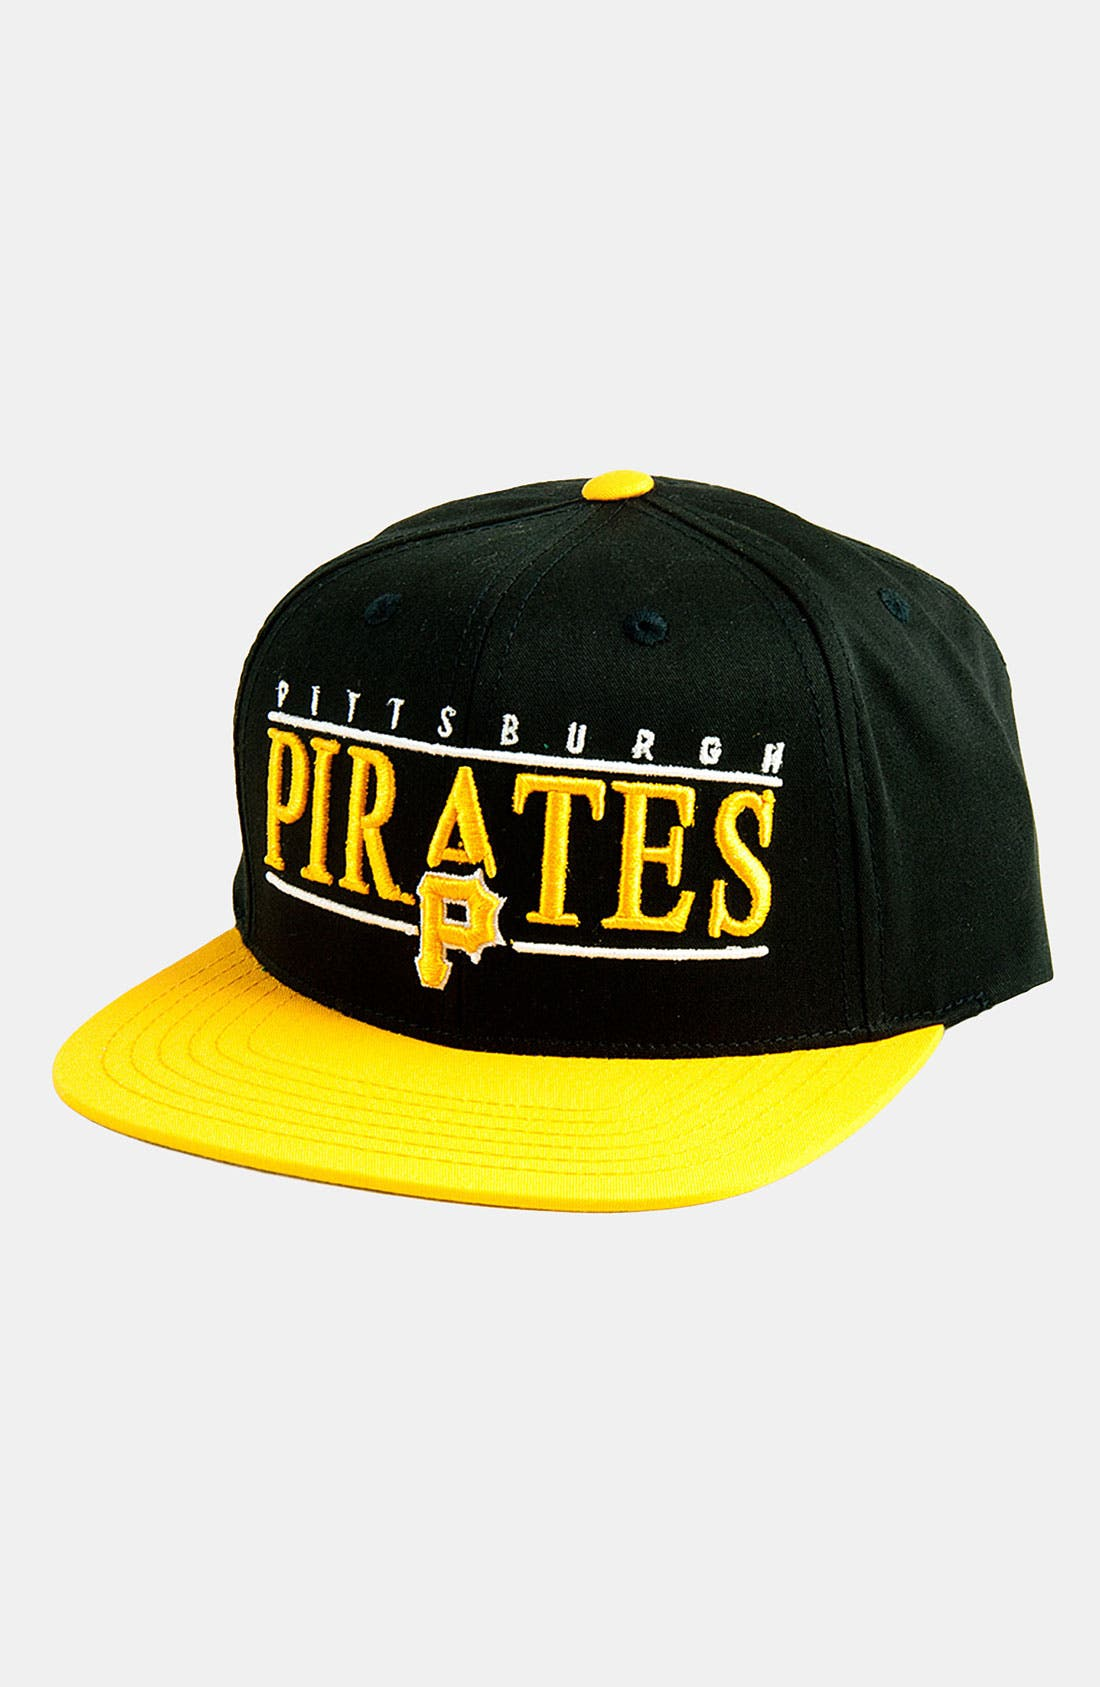 Alternate Image 1 Selected - American Needle 'Pittsburgh Pirates - Nineties' Twill Snapback Baseball Cap